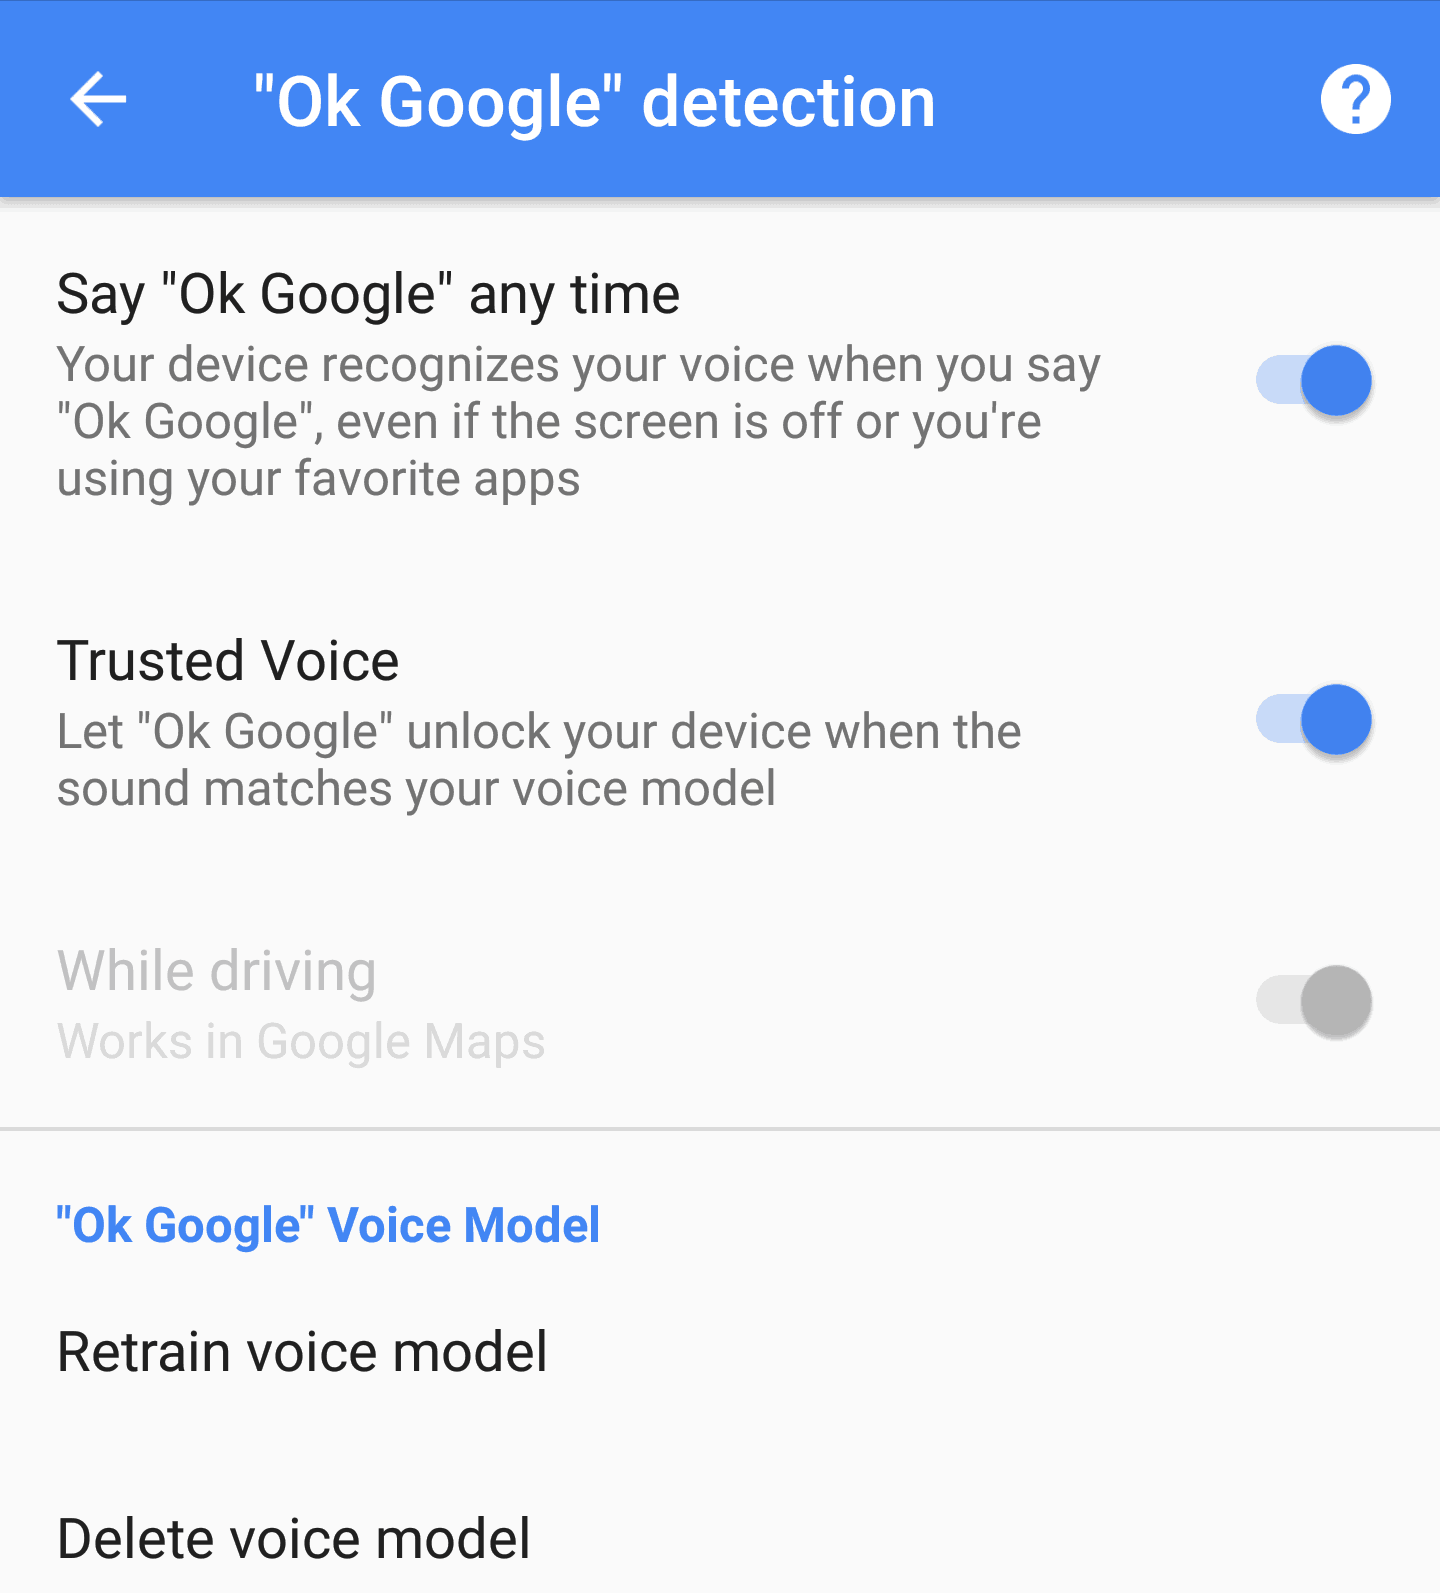 ok-google-detection-settings-e1477328370884